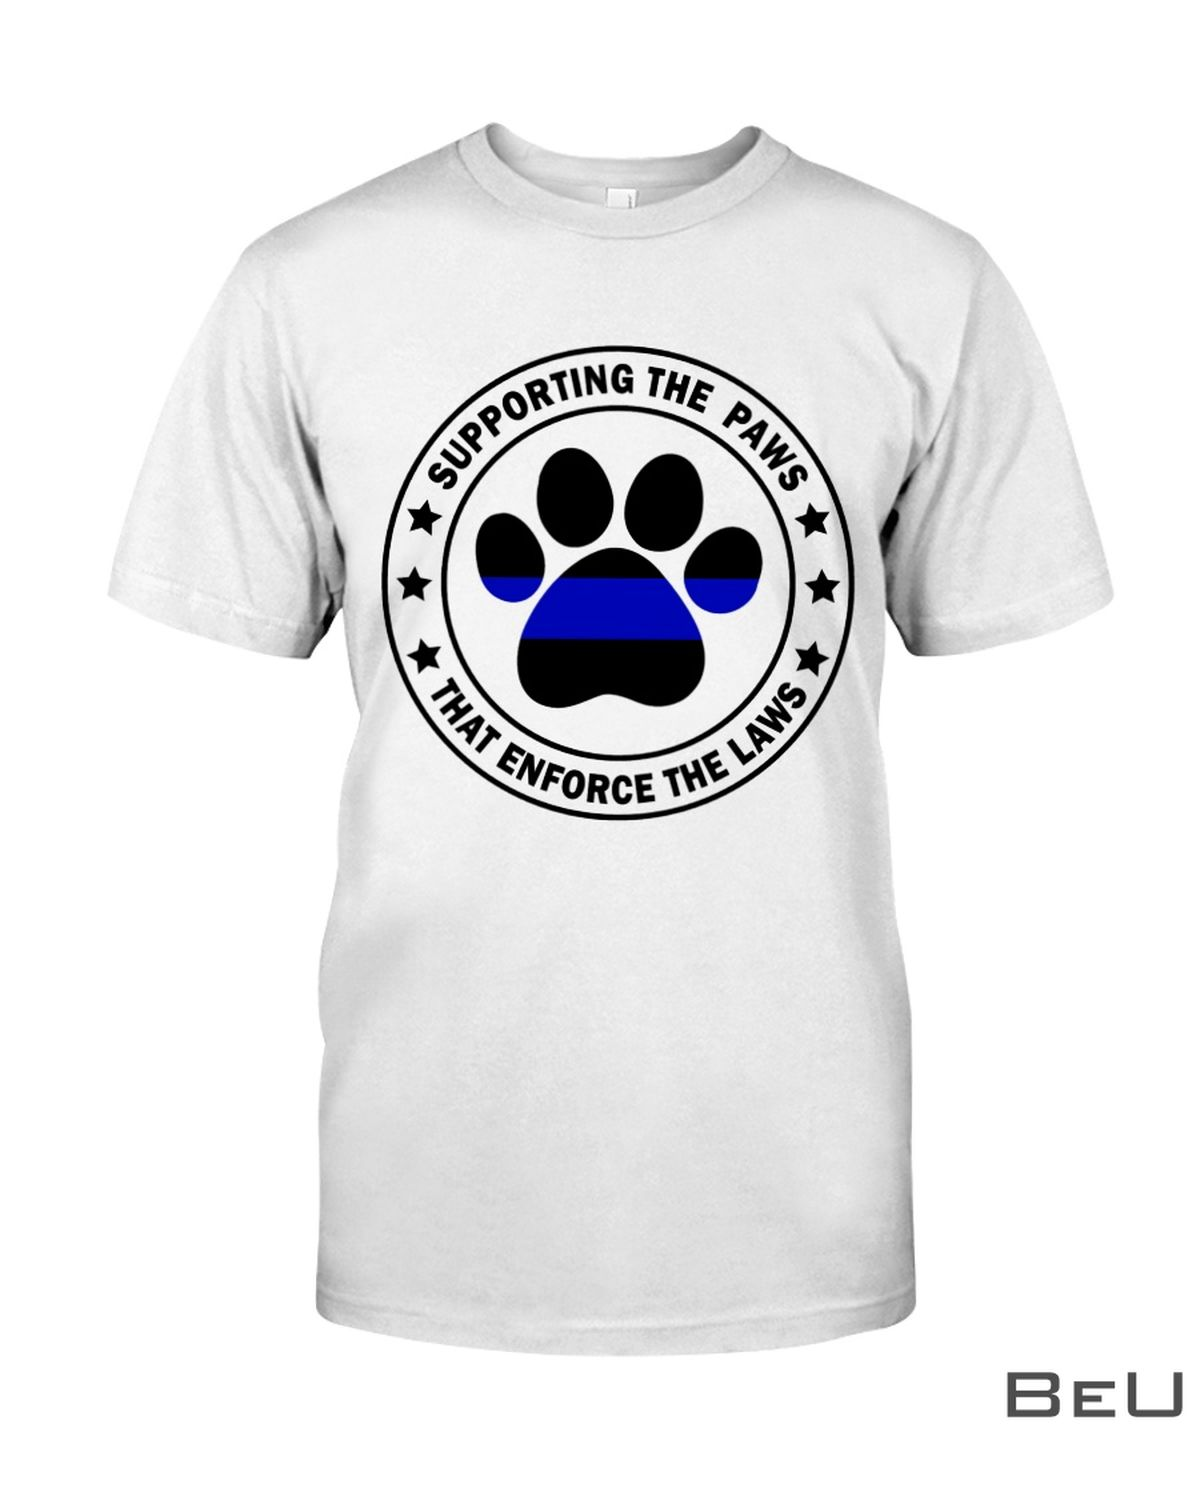 Supporting The Paws That Enforce Th Laws Shirt